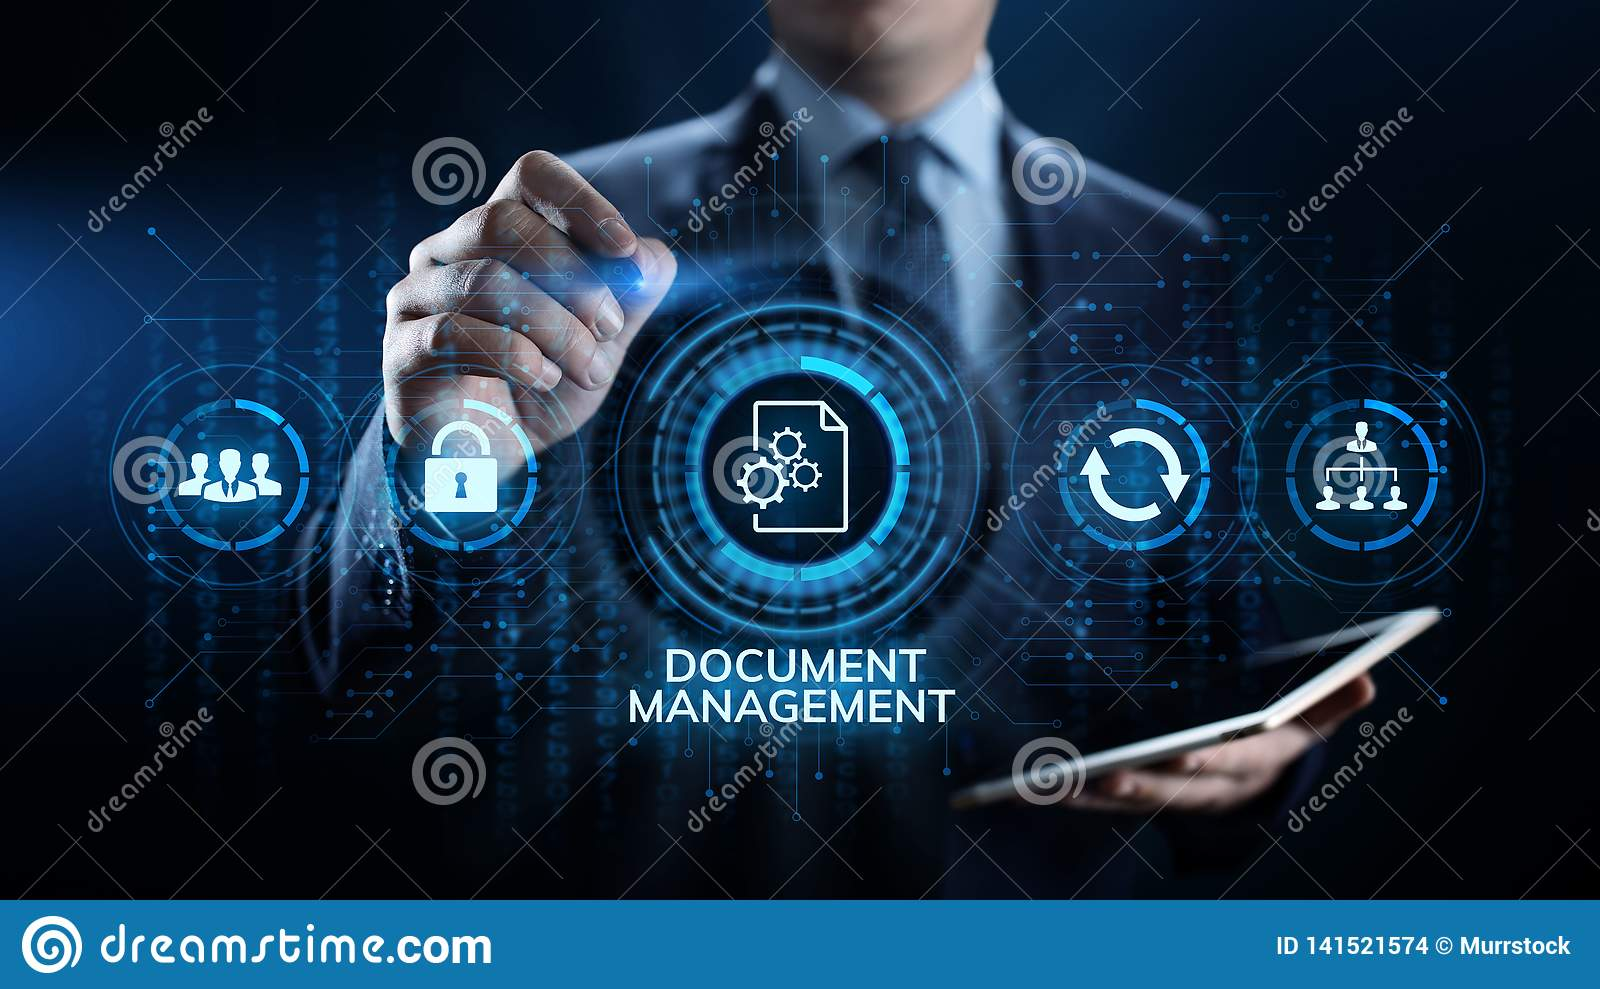 digitization and document management system